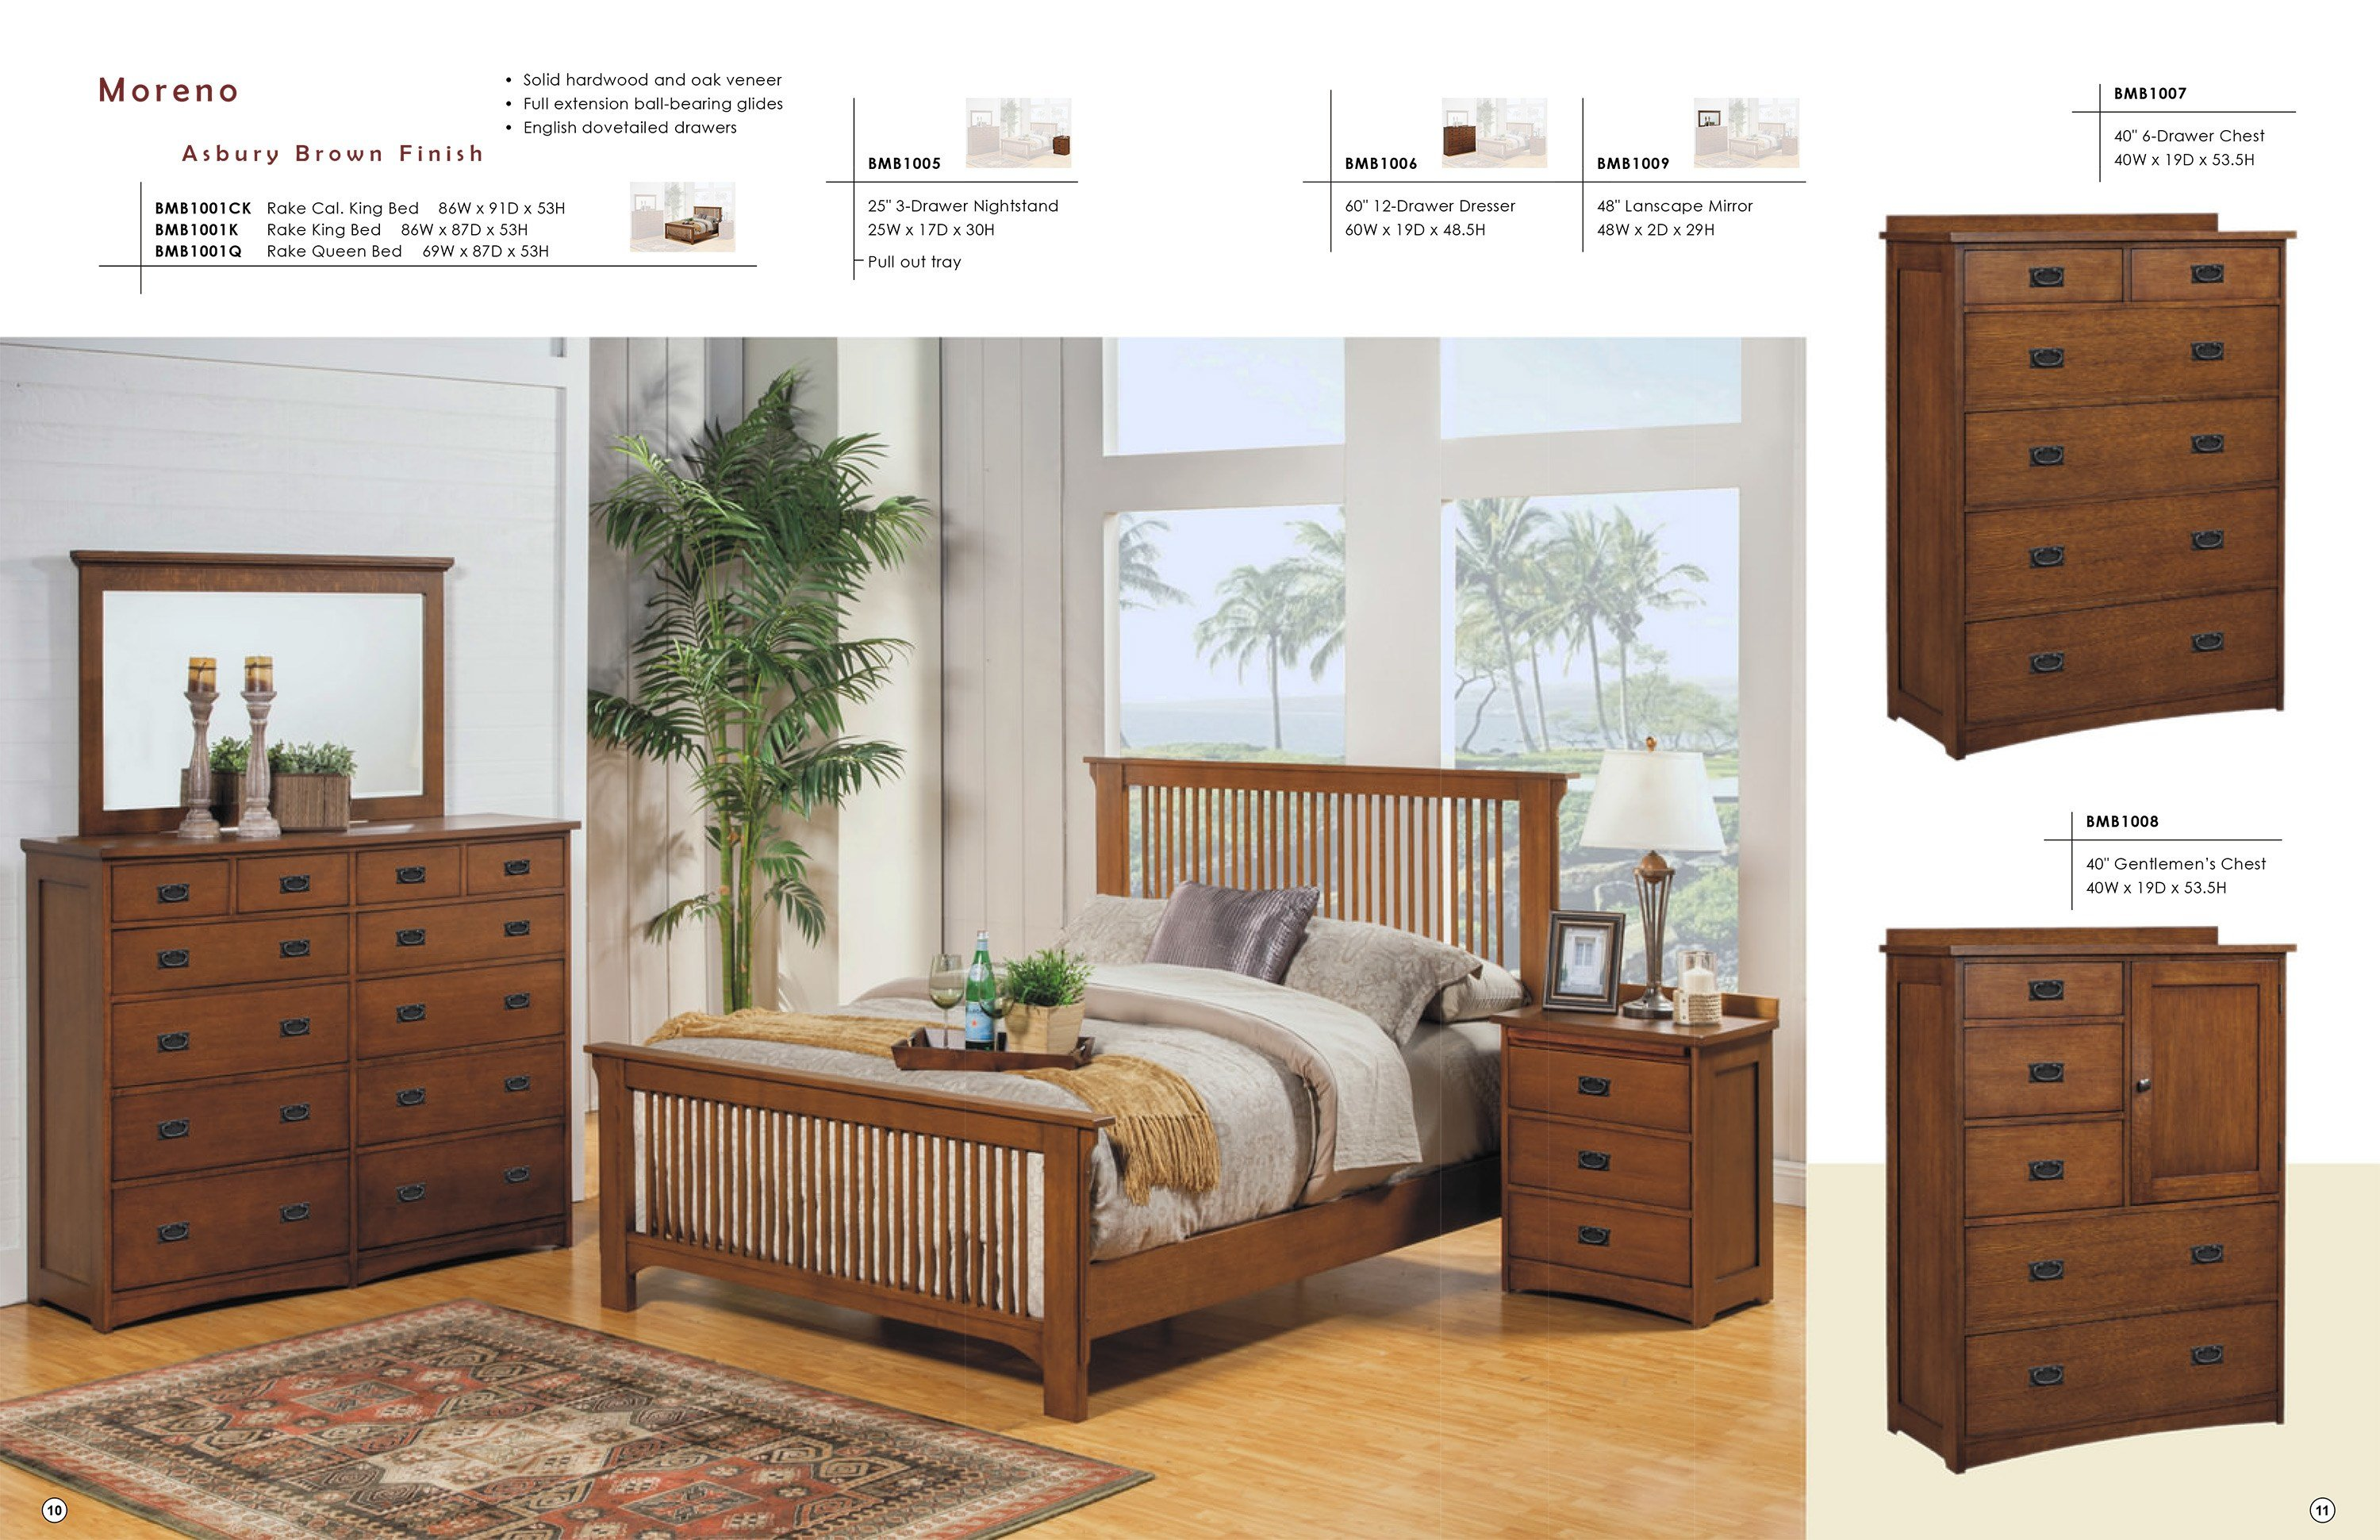 Best Low Prices • Winners Only Moreno Bedroom Furniture • Al With Pictures